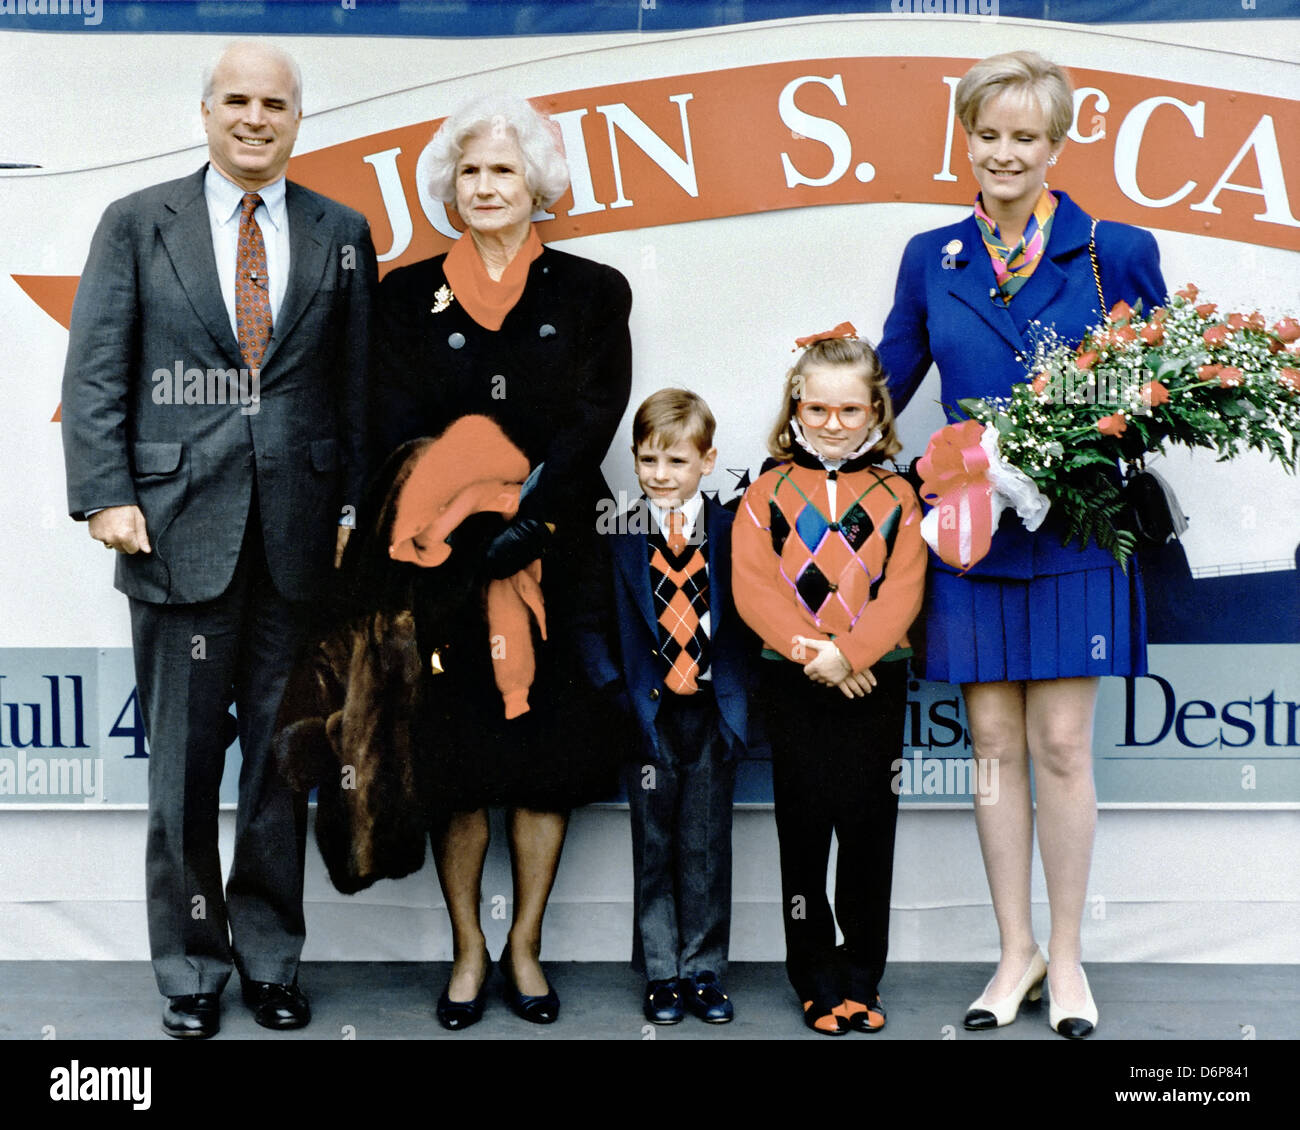 John Mccain Family: Members Of The McCain Family Pose For A Photograph During